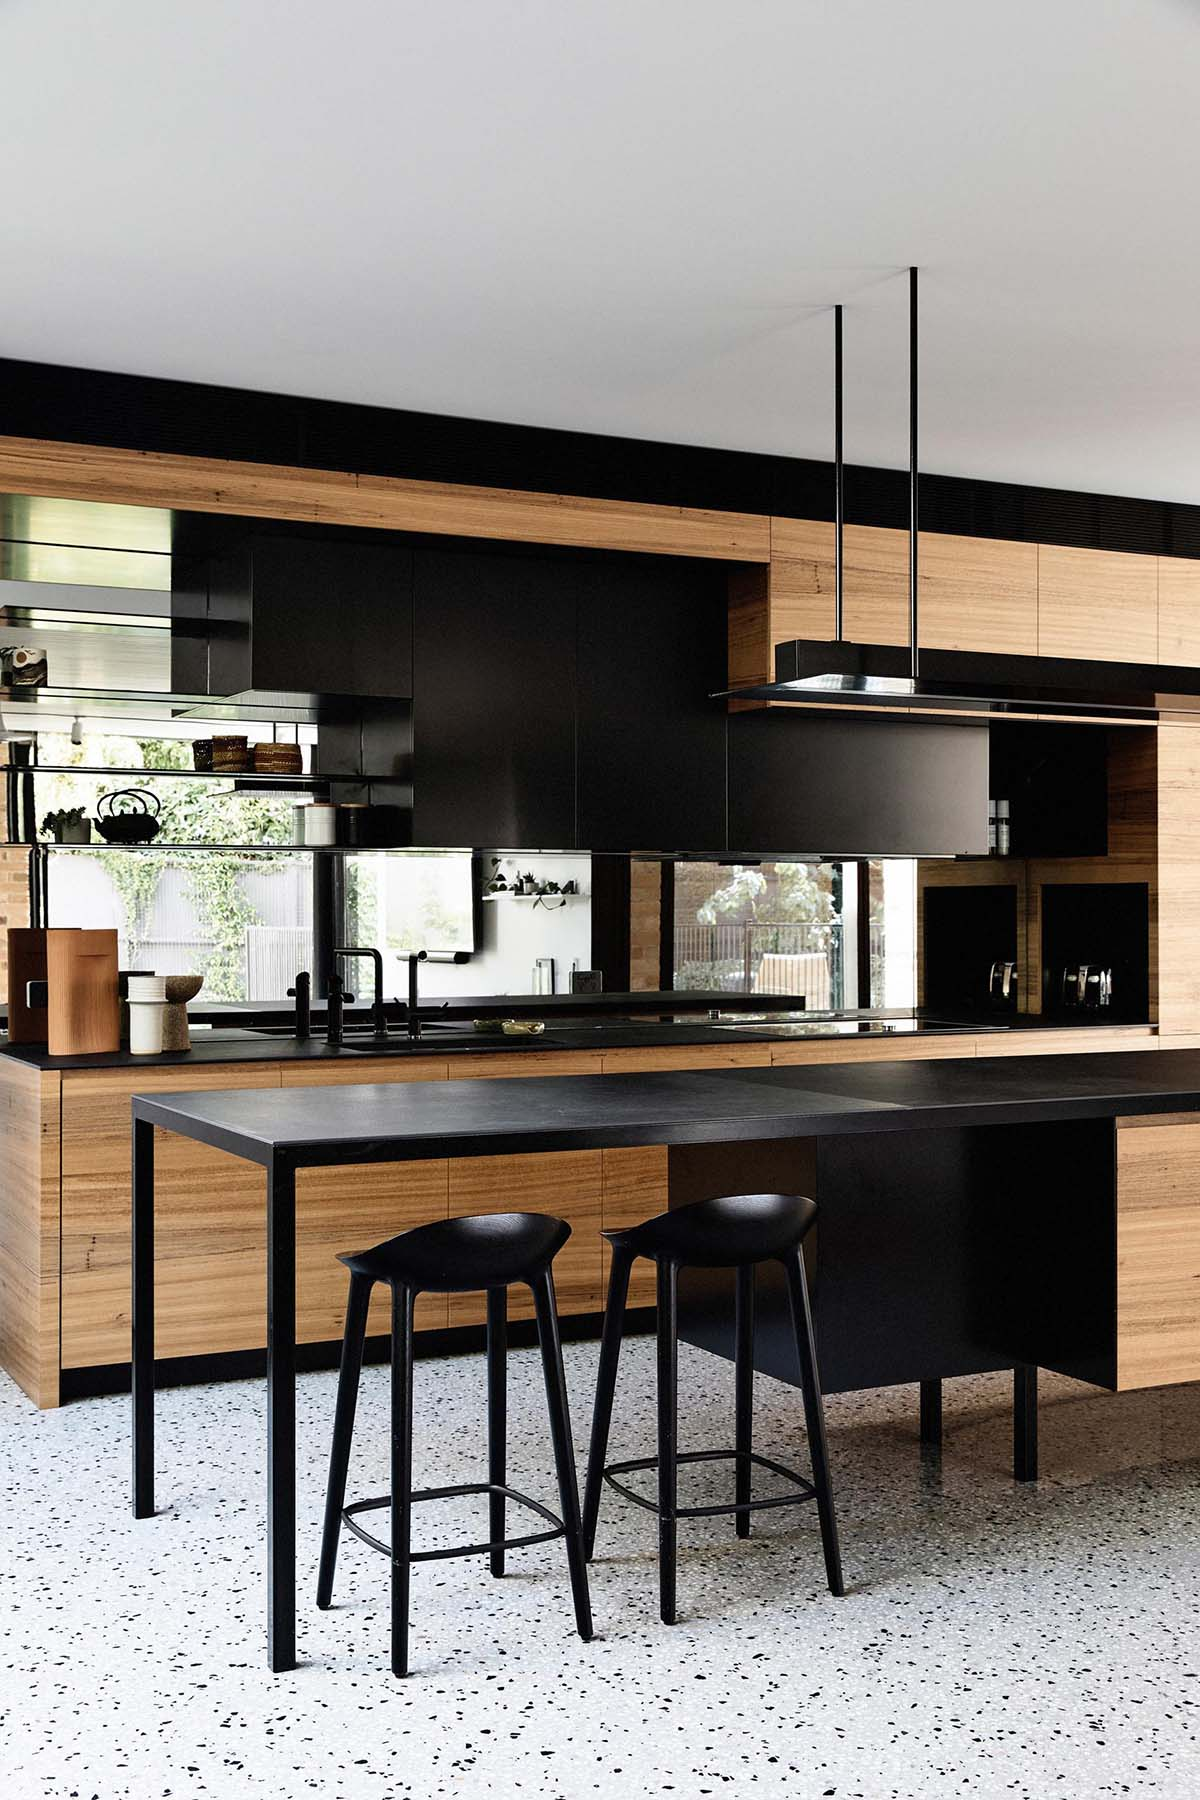 In this modern kitchen, hardware free cabinets line the wall, while the black island and shelving creates a contrasting element, and the mirrored backsplash reflects the living room.